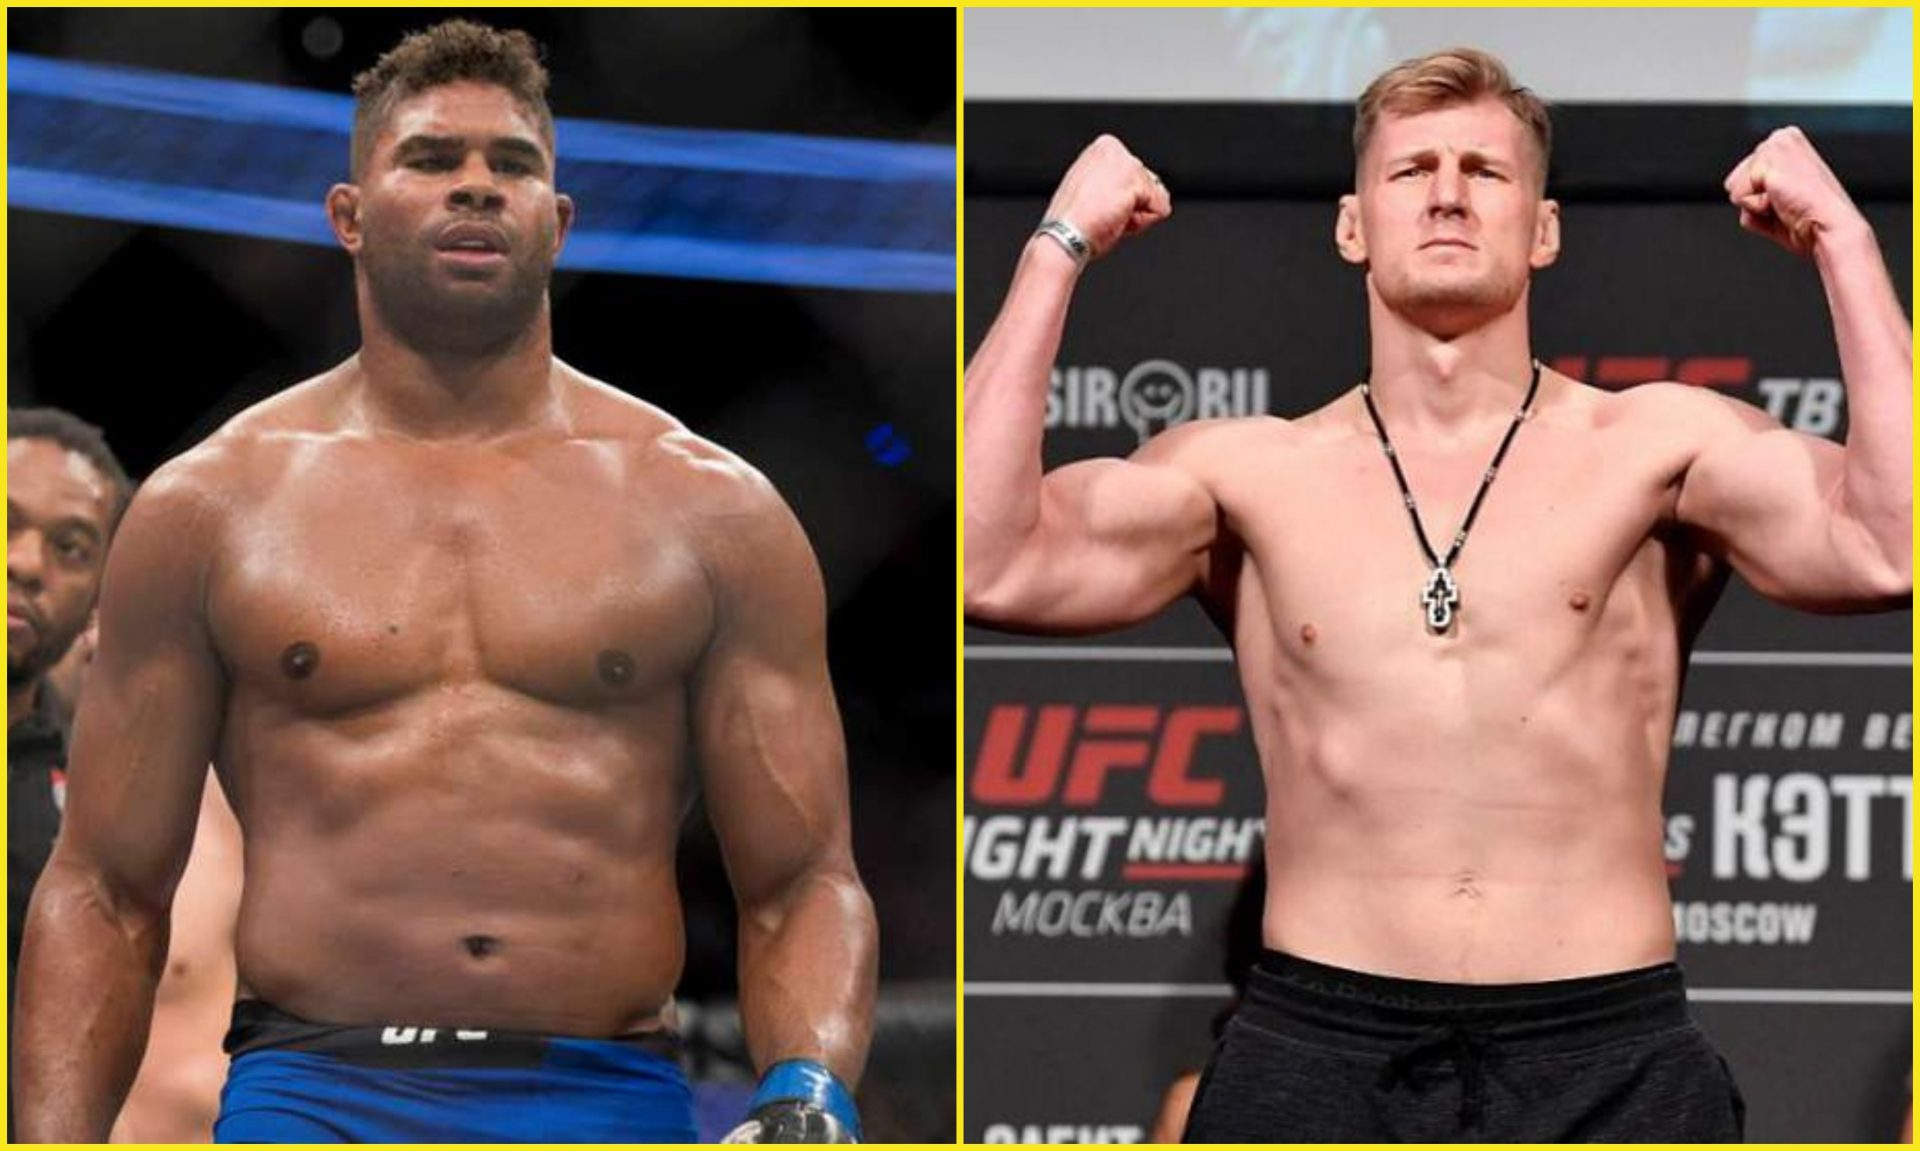 Alistair Overeem vs Alexander Volkov set for UFC event on Feb. 6 - Alistair Overeem